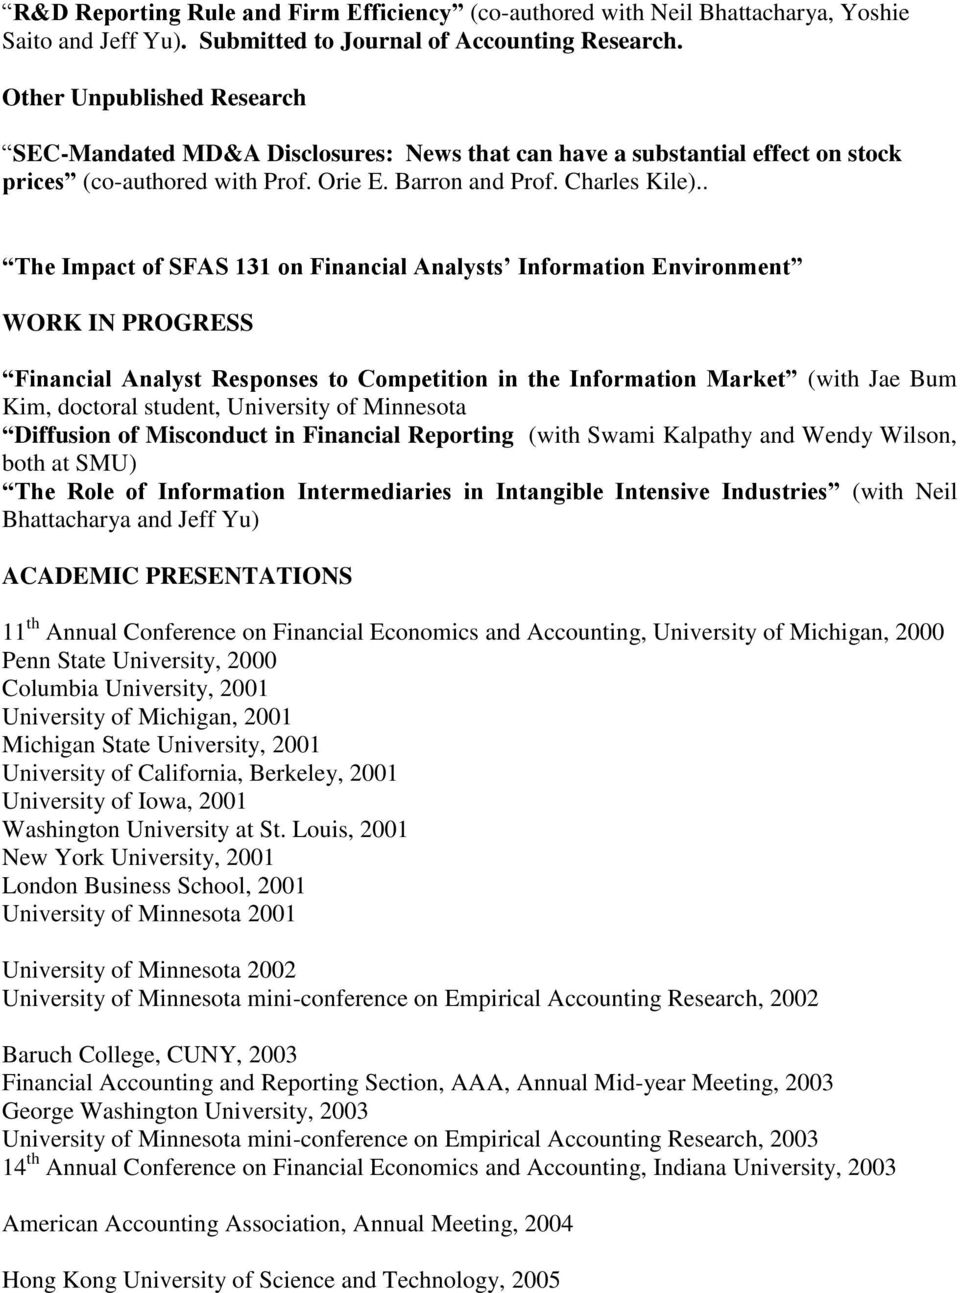 . The Impact of SFAS 131 on Financial Analysts Information Environment WORK IN PROGRESS Financial Analyst Responses to Competition in the Information Market (with Jae Bum Kim, doctoral student,